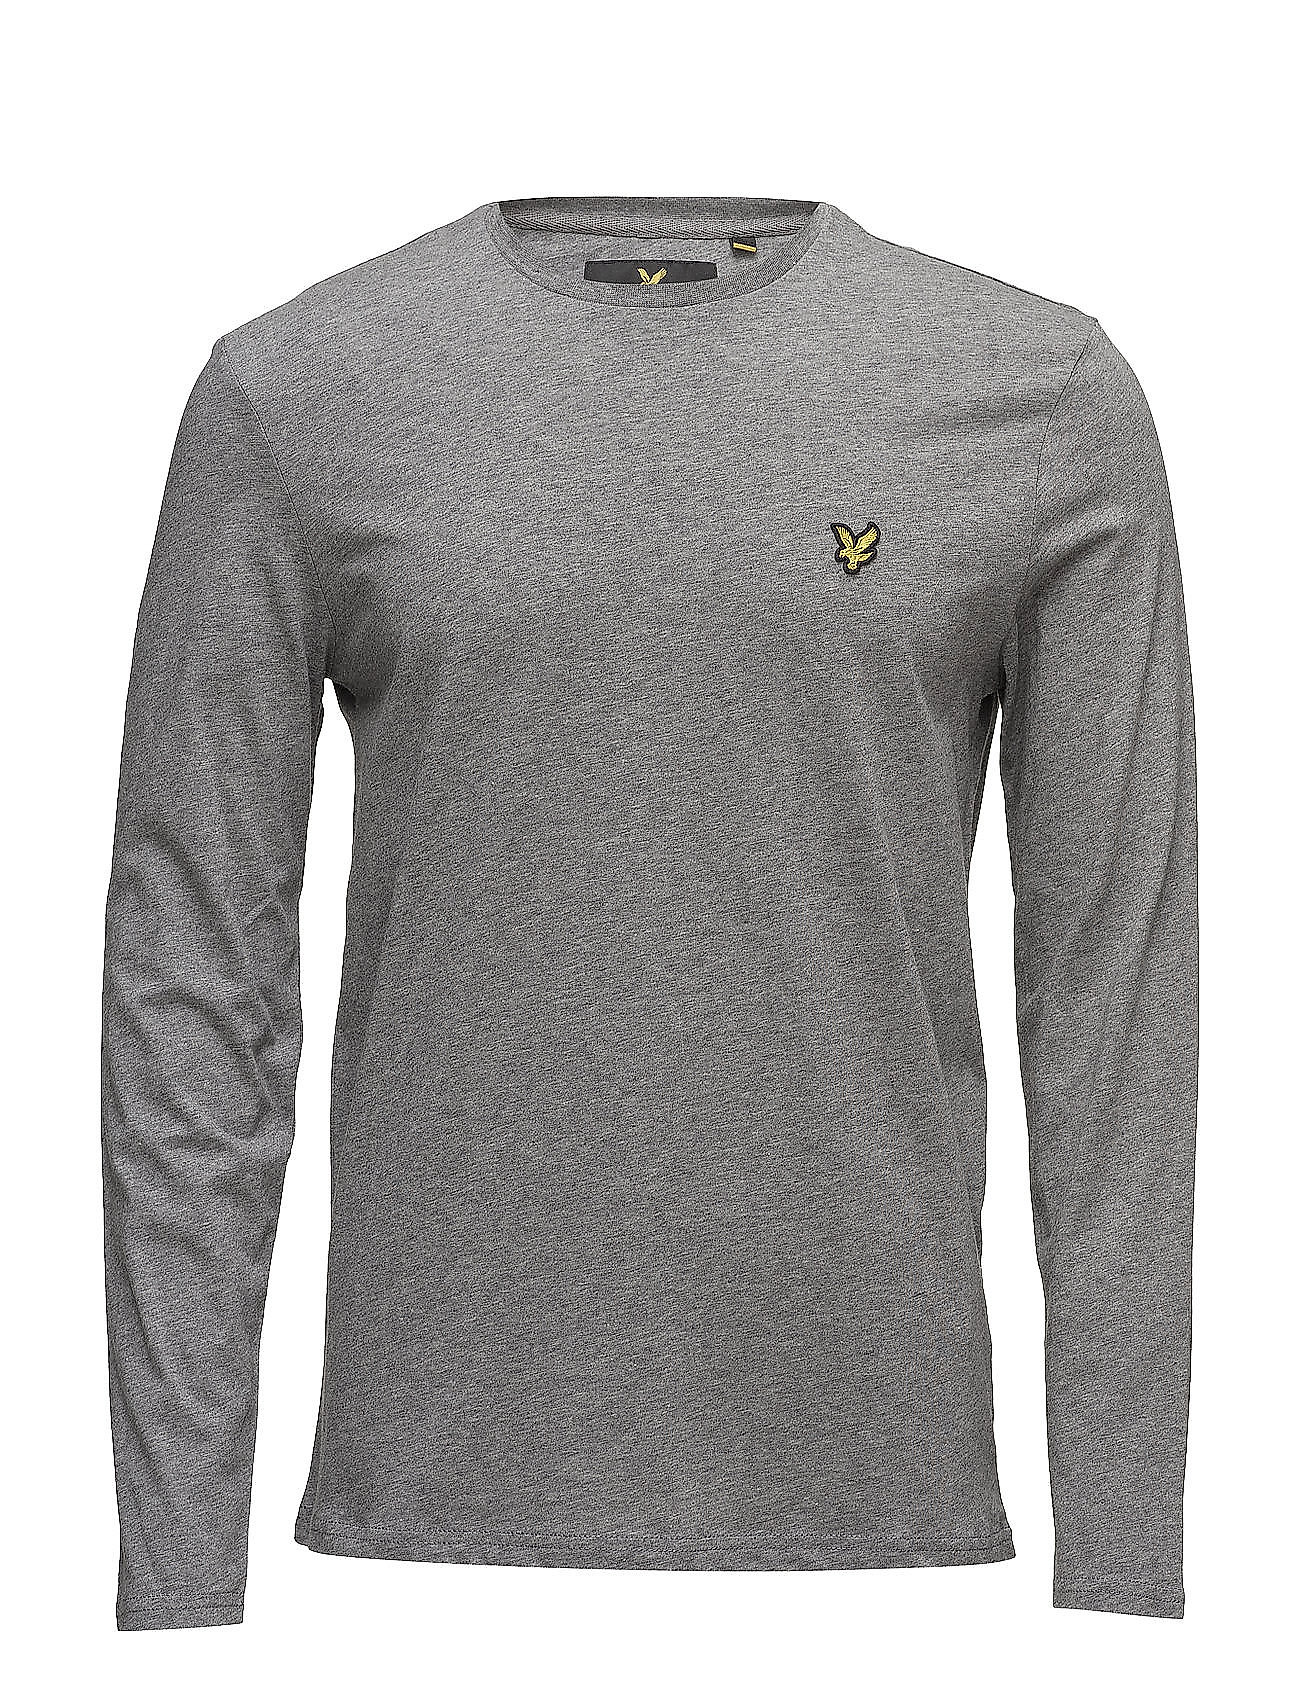 MarlLyleamp; Grey Scott shirtmid Ls Neck Crew T Yfyv6m7bgI